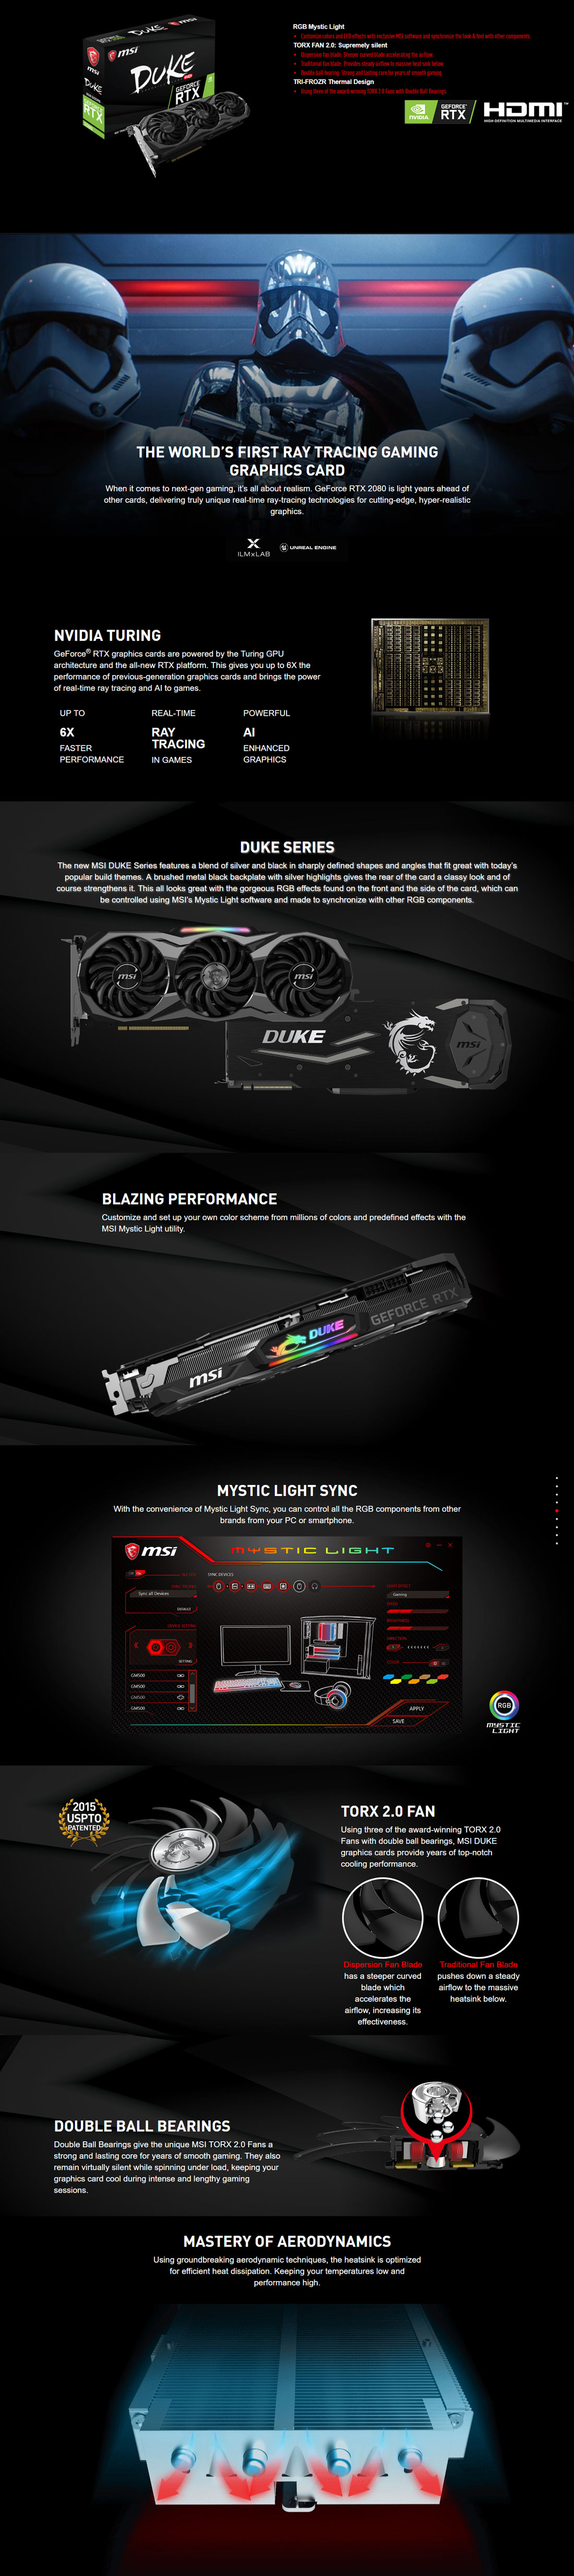 MSI RTX 2080 DUKE OC